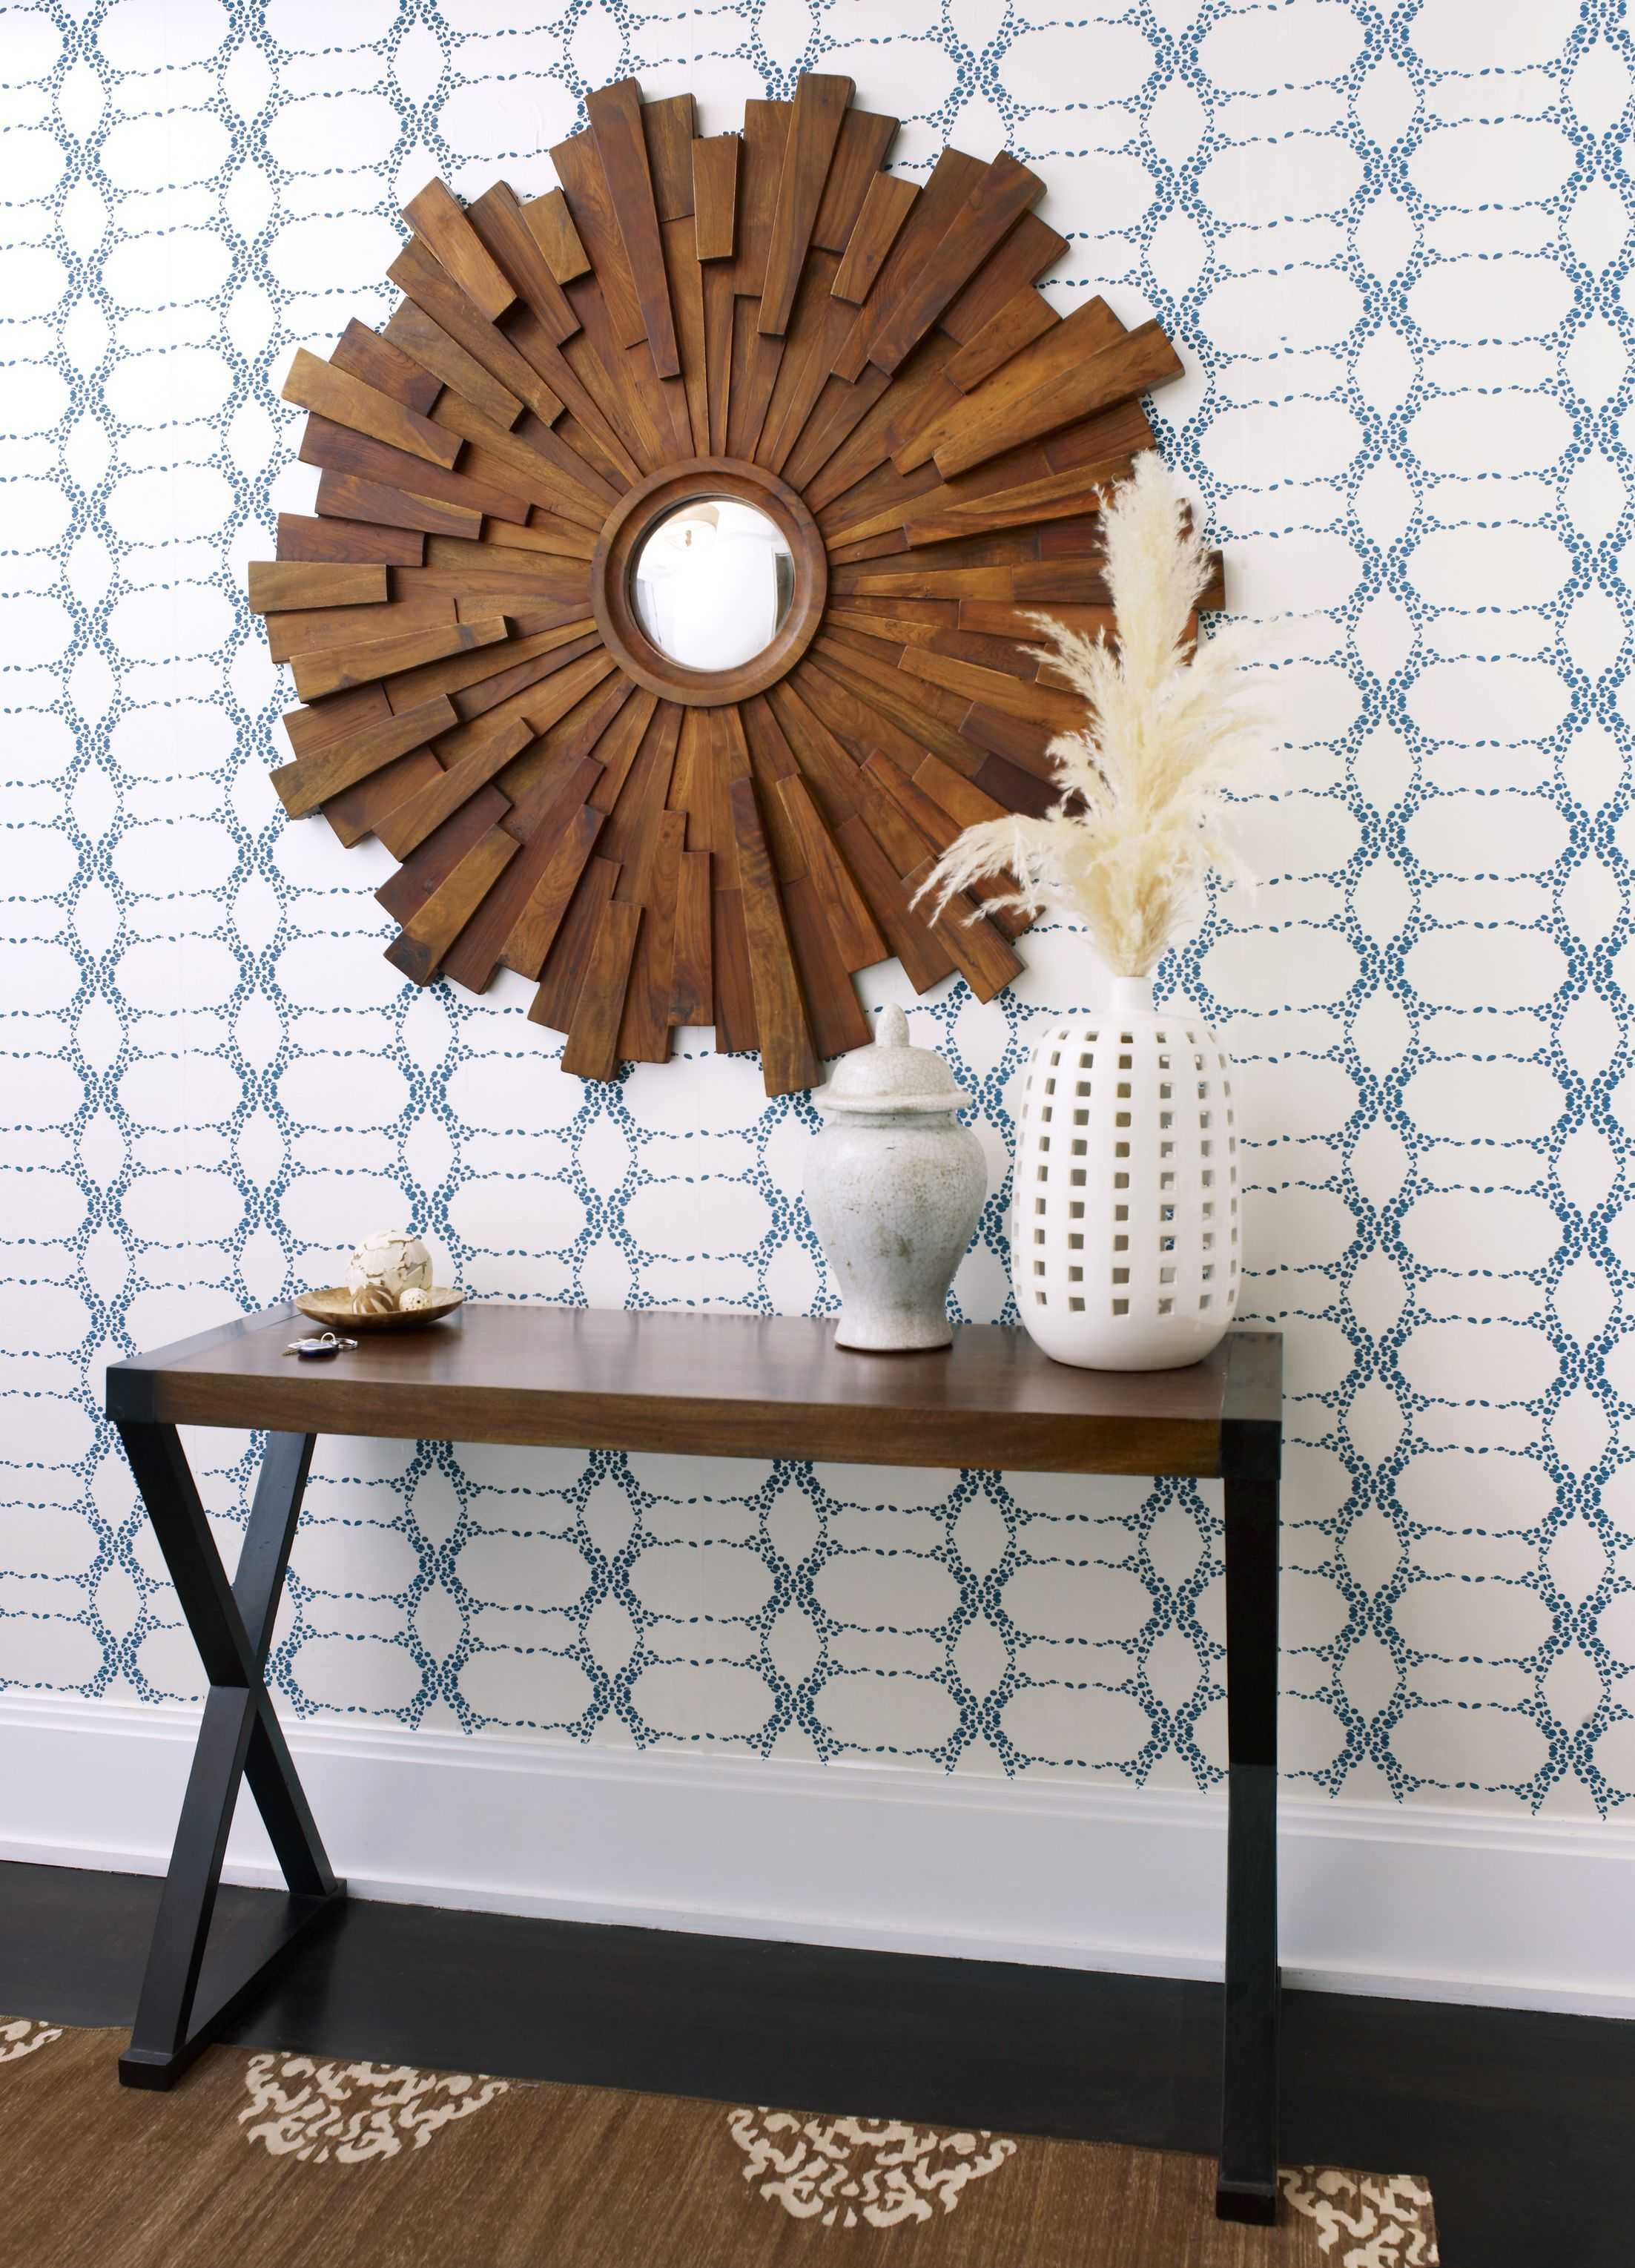 entry - Eclectic - Entryway and Hallway - Images by Allison Robins Lind Interiors | Wayfair